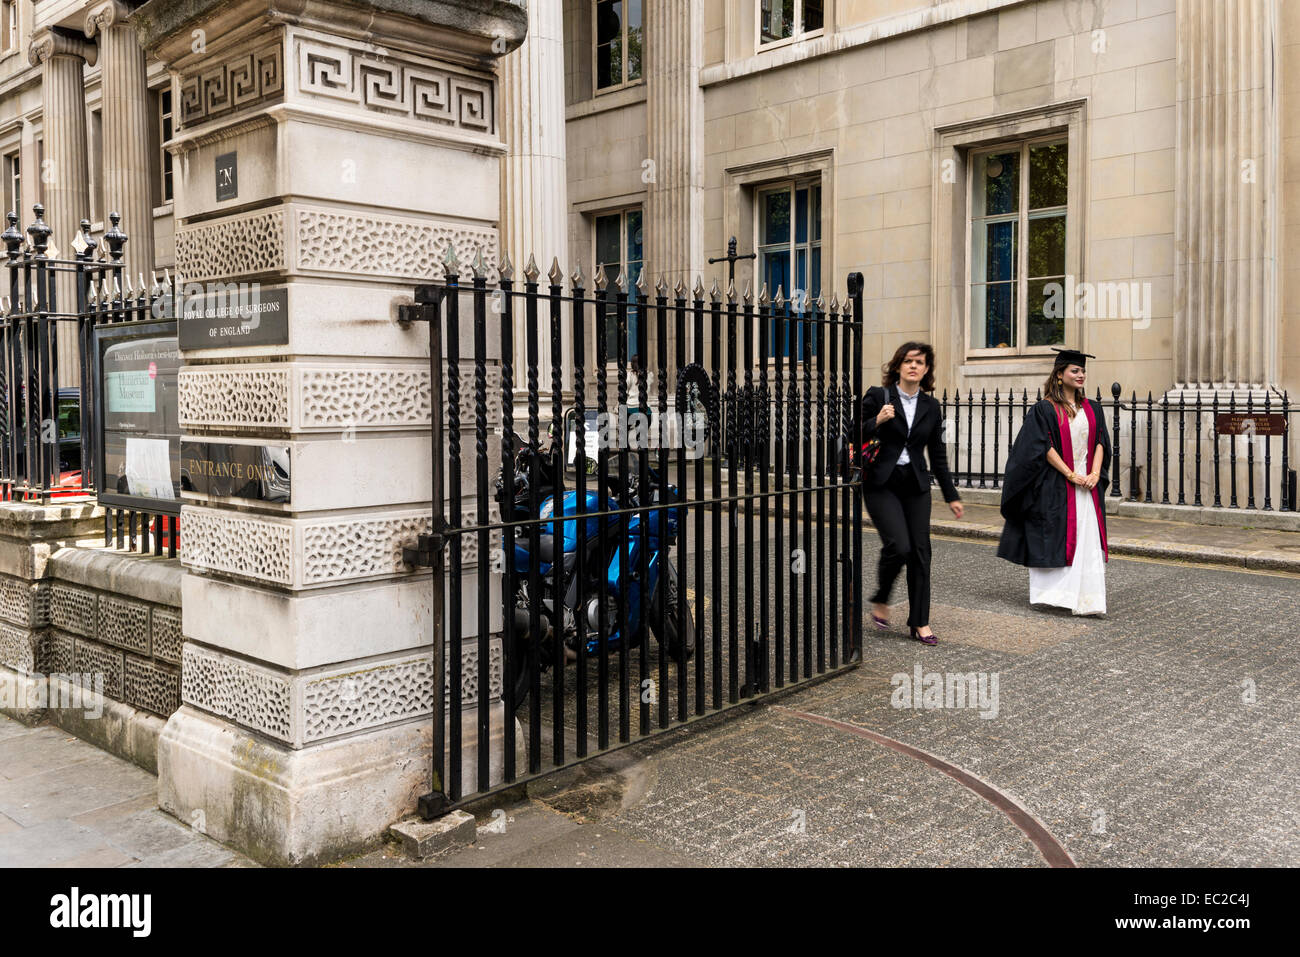 Royal College of Surgeons of London, Lincoln's Inn Fields, London, UK - Stock Image